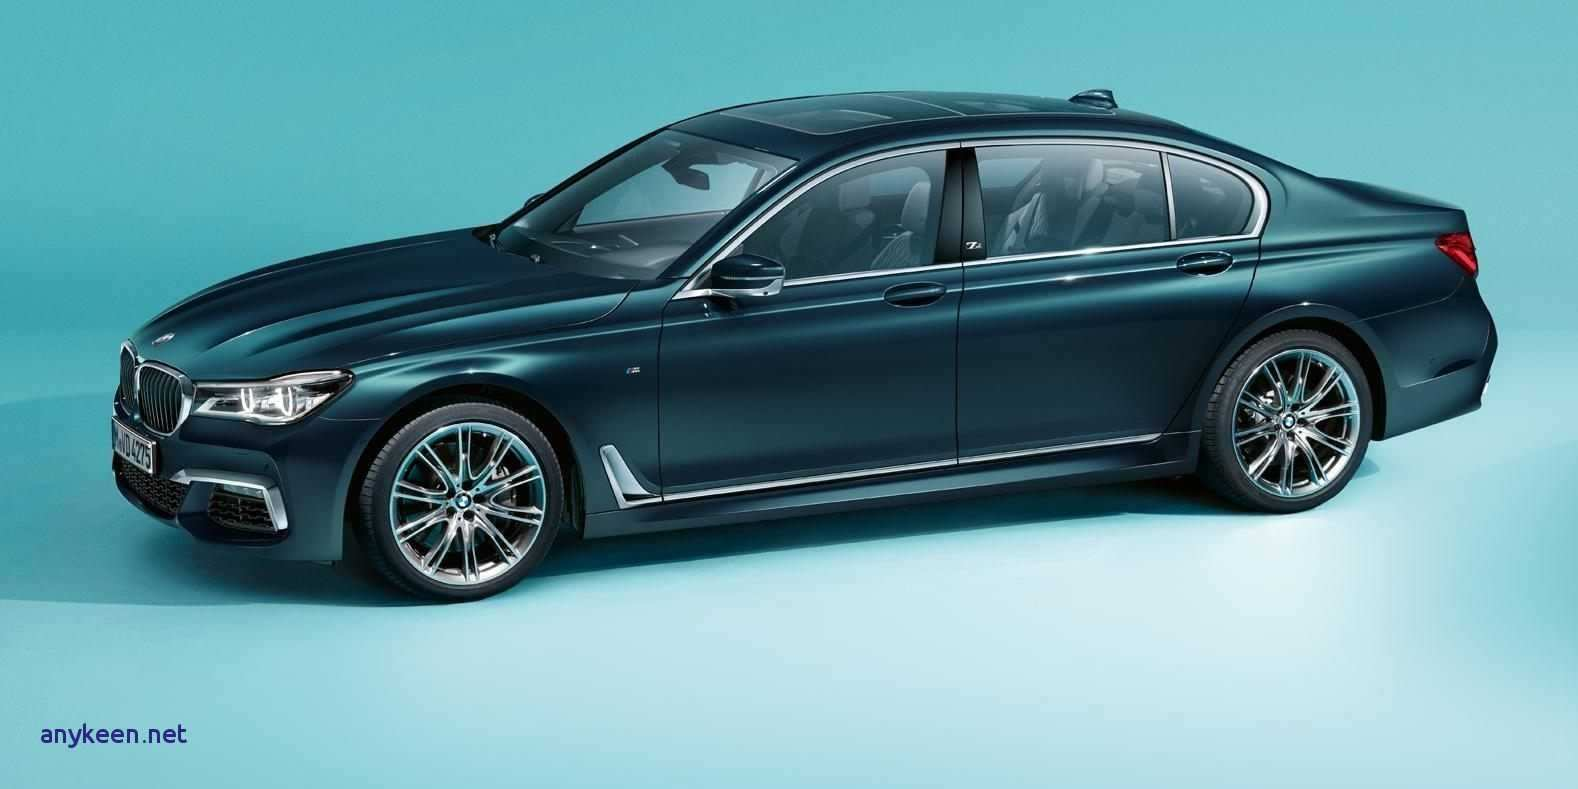 83 The 2019 BMW 7 Series Perfection New Review And Release Date